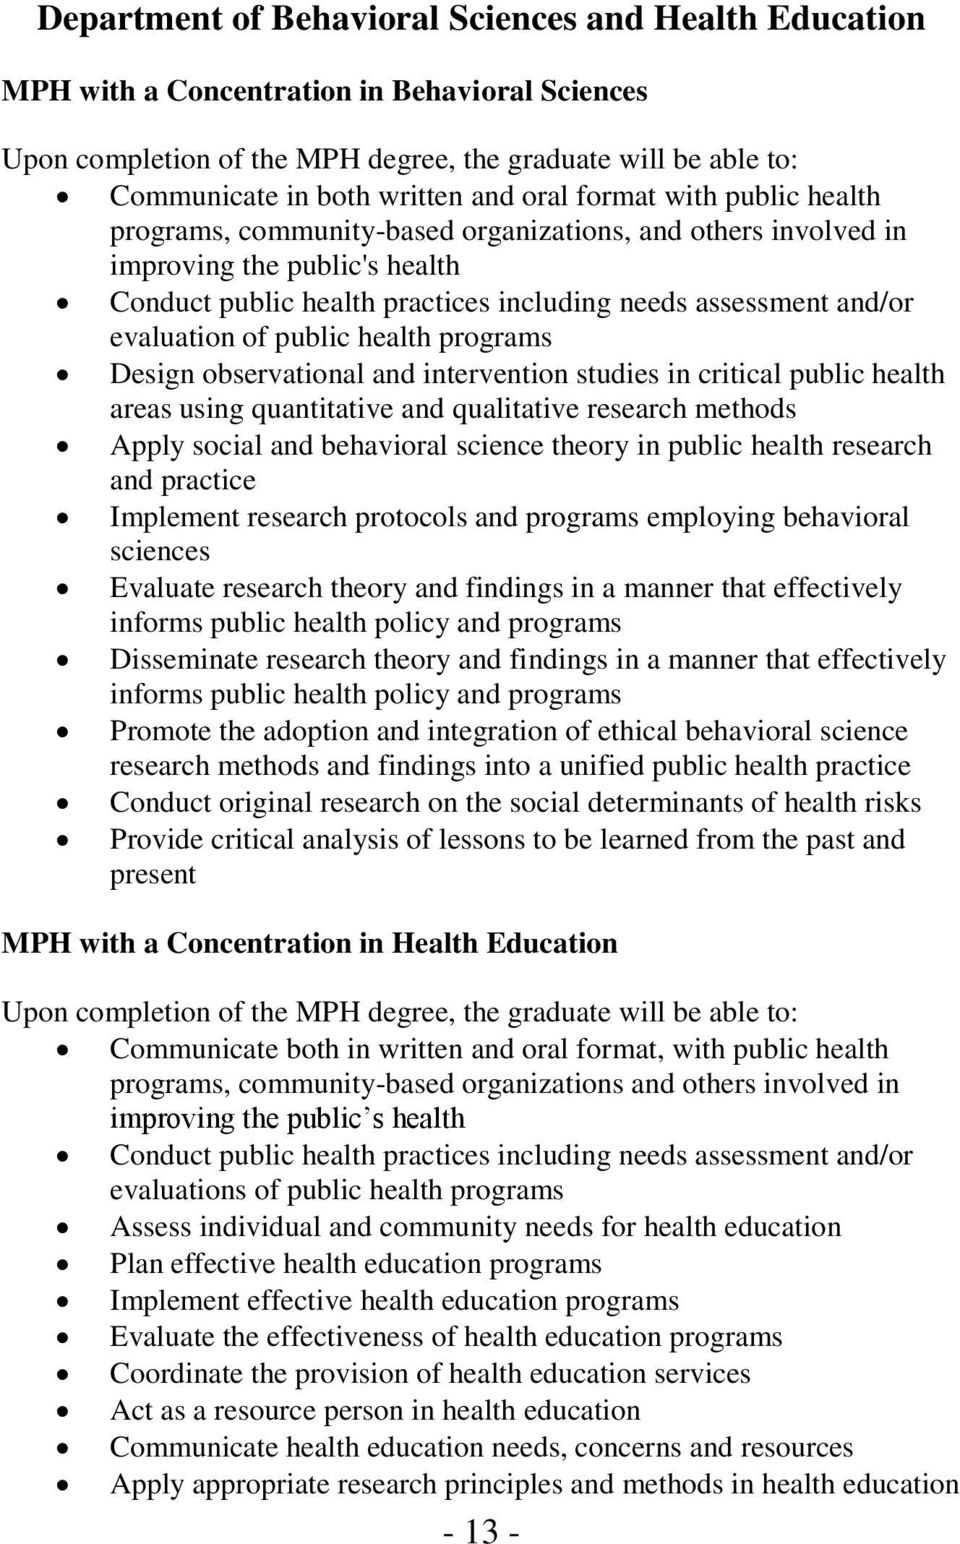 evaluation of public health programs Design observational and intervention studies in critical public health areas using quantitative and qualitative research methods Apply social and behavioral